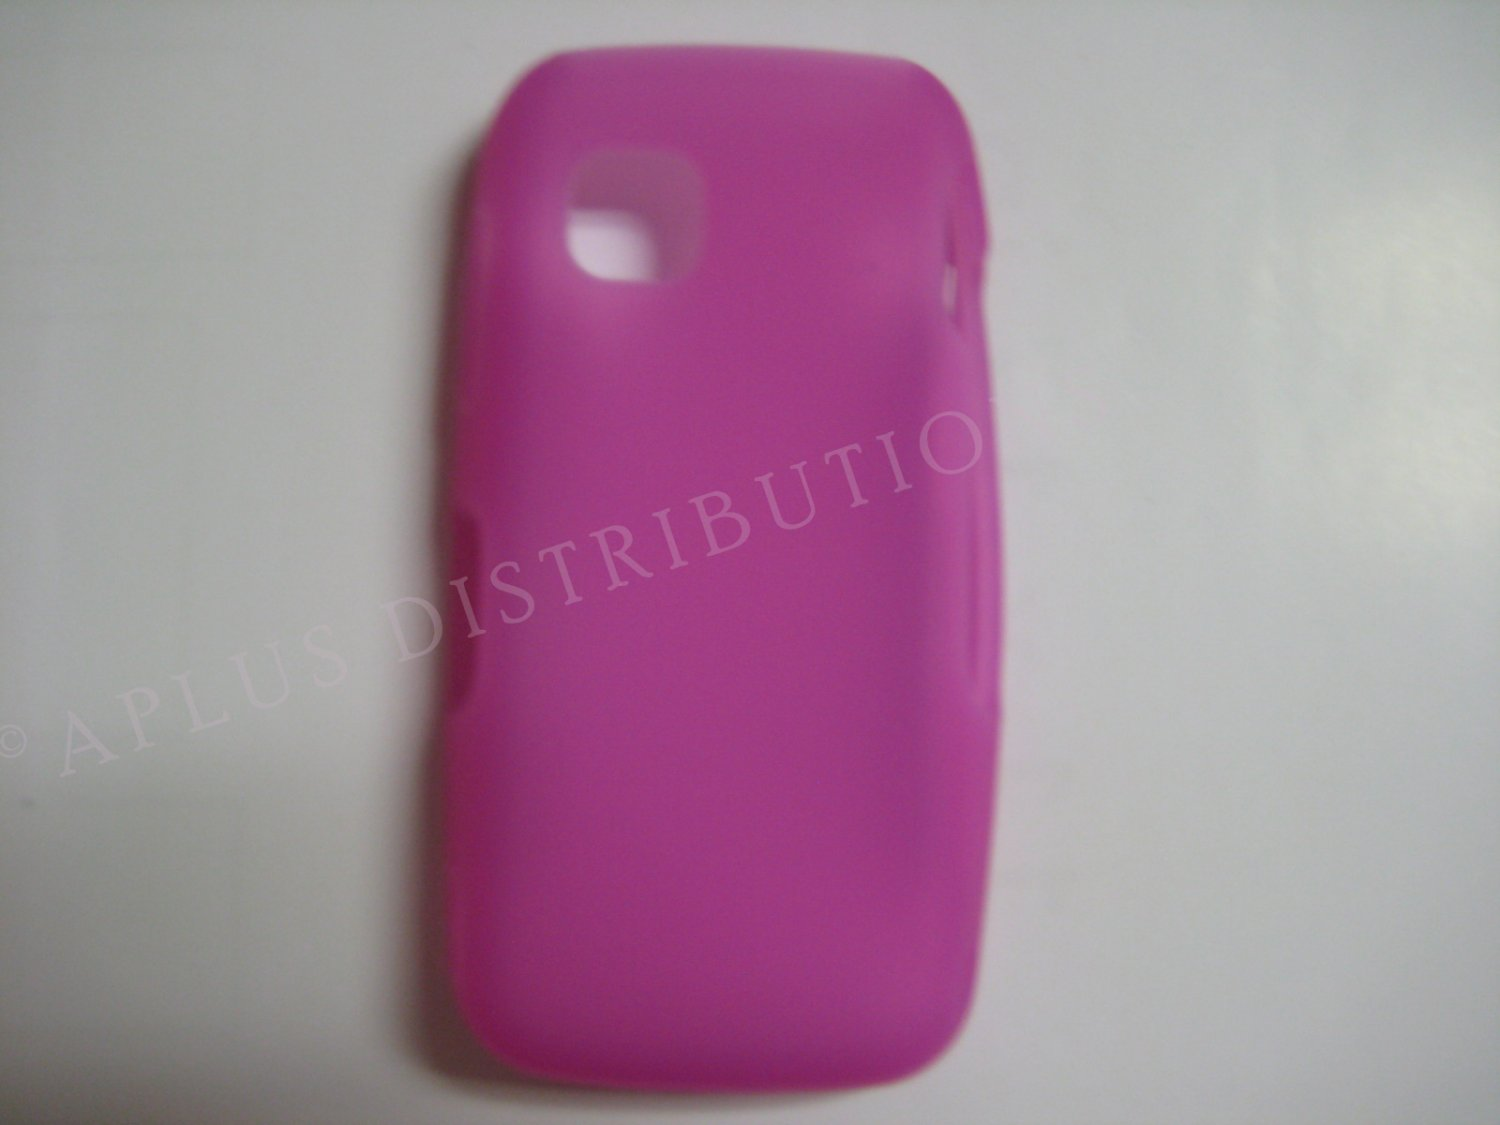 New Hot Pink Solid Color Silicone Skin Case For Nokia Nuron 5230 - (0009)